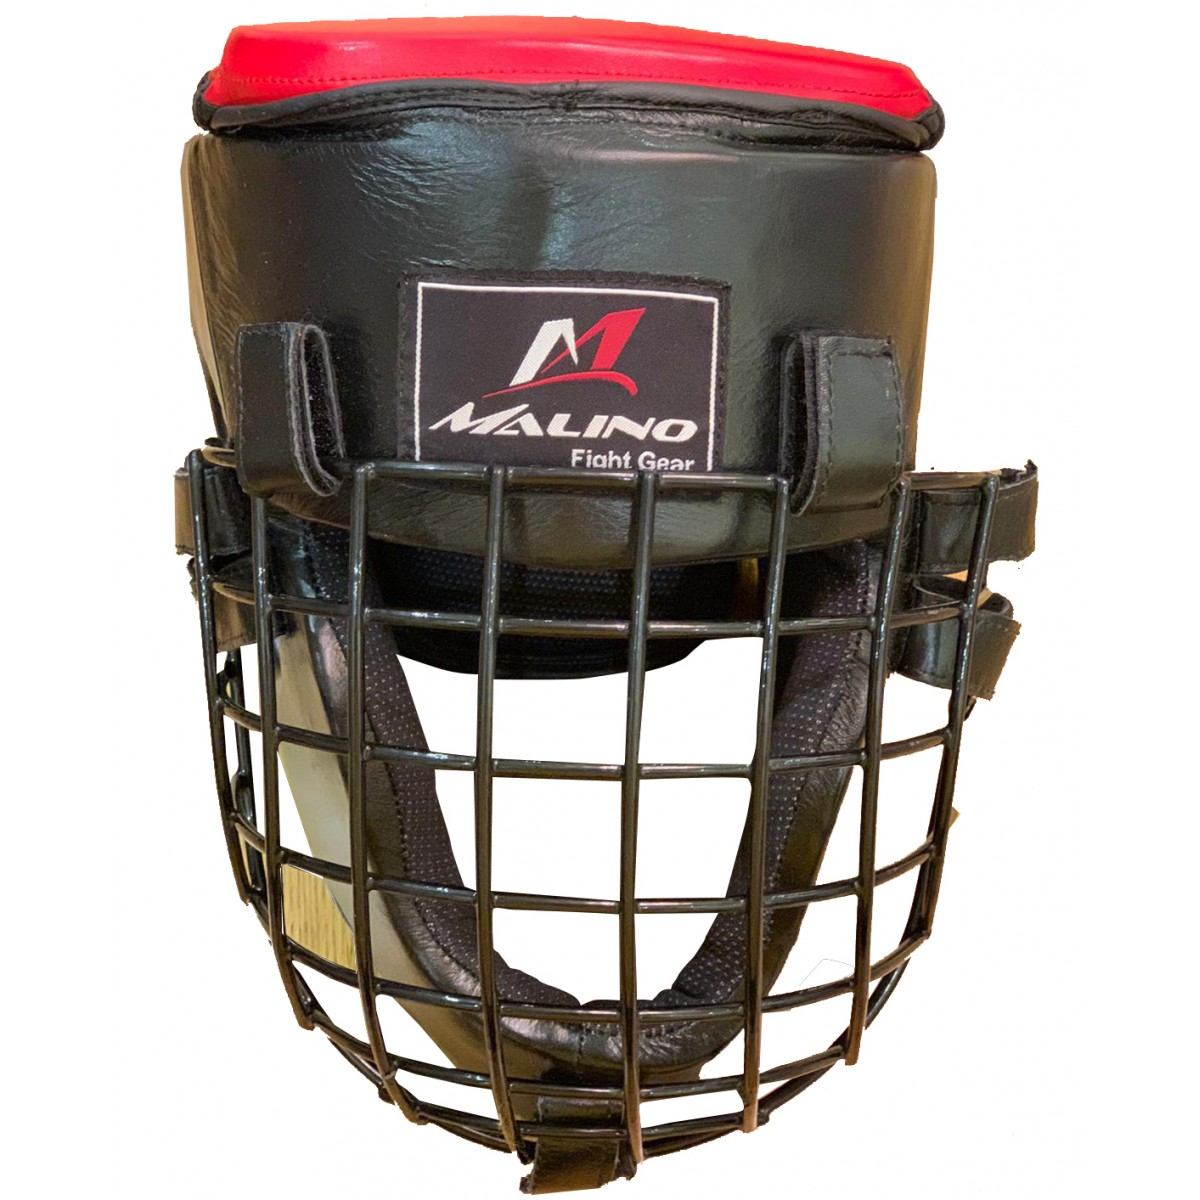 Malino Premium Cowhide Leather Head Guard with Grill